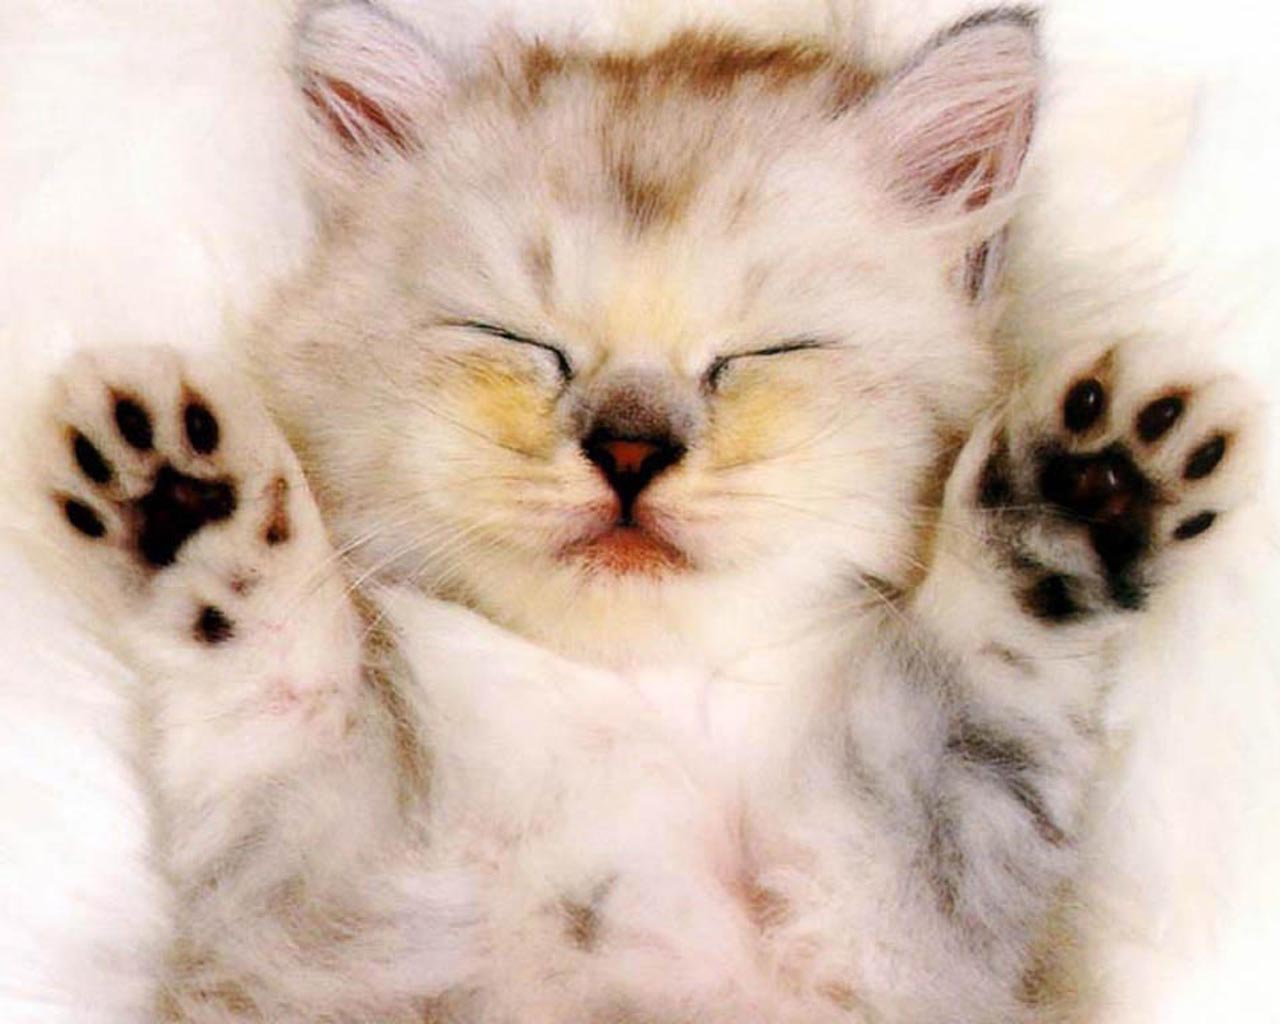 Animal wallpapersVery cute baby kitten Wallpapers Images Stock 1280x1024